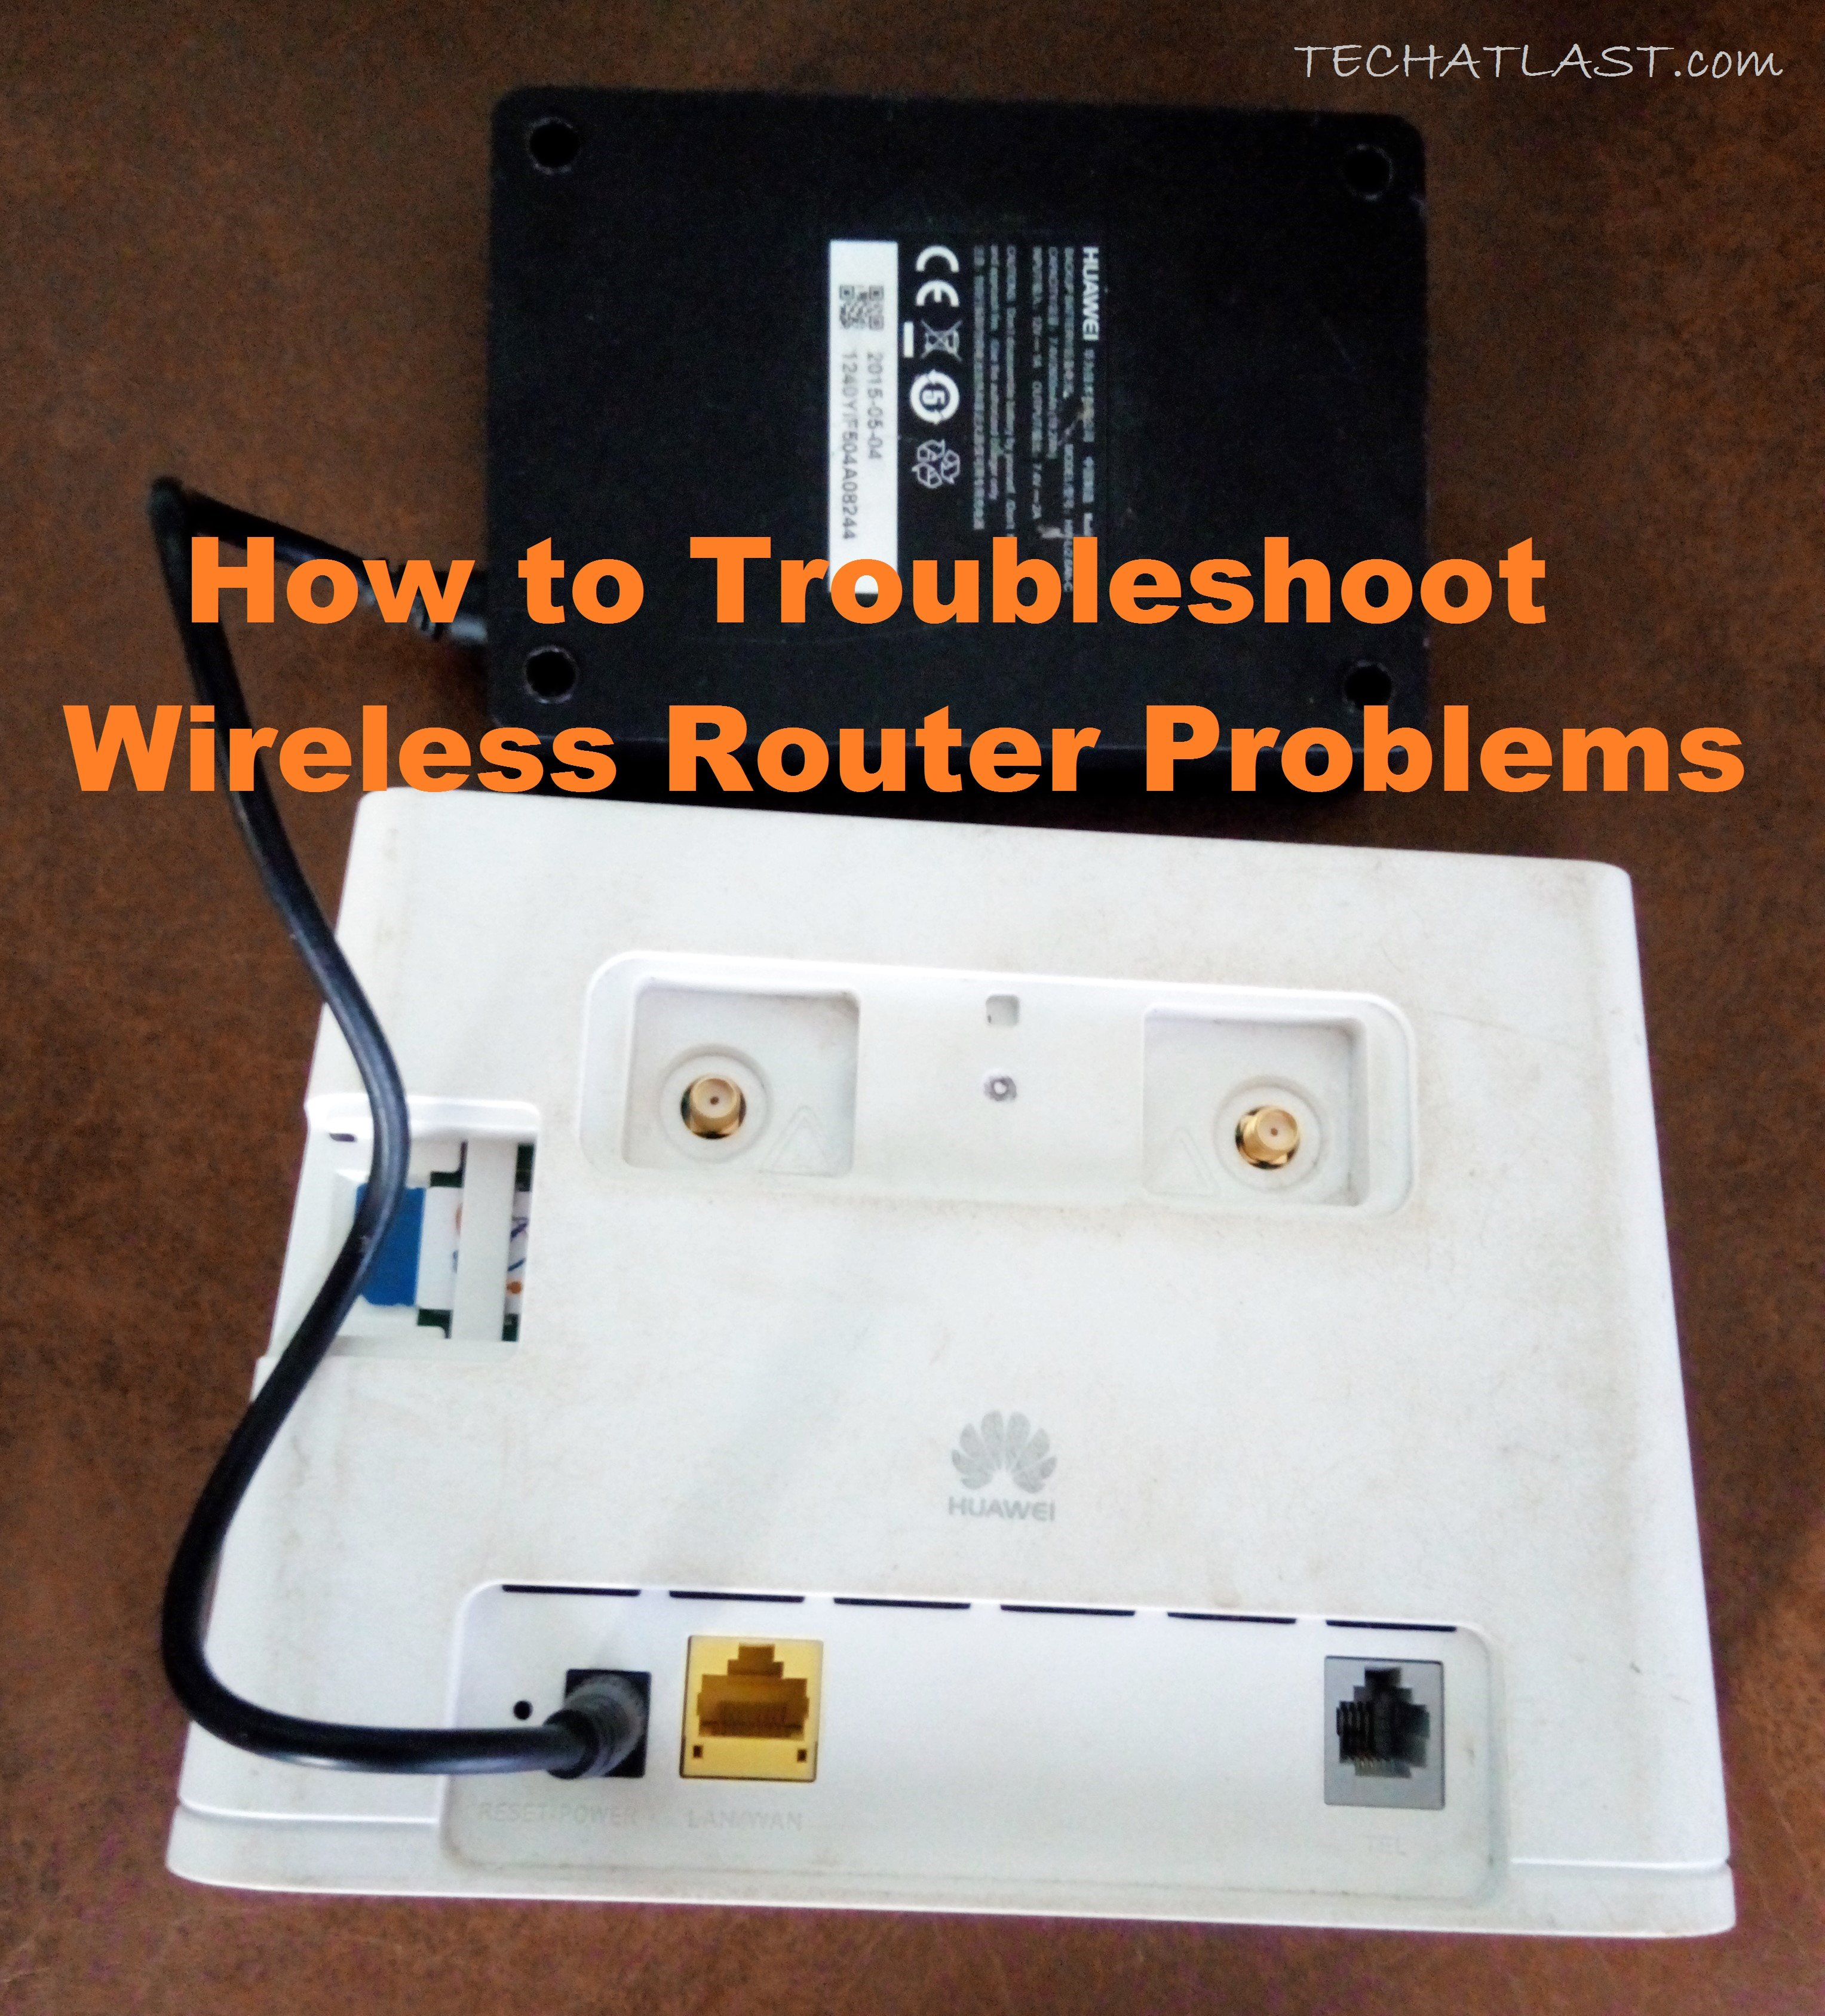 Wireless Router Problems troubleshooting